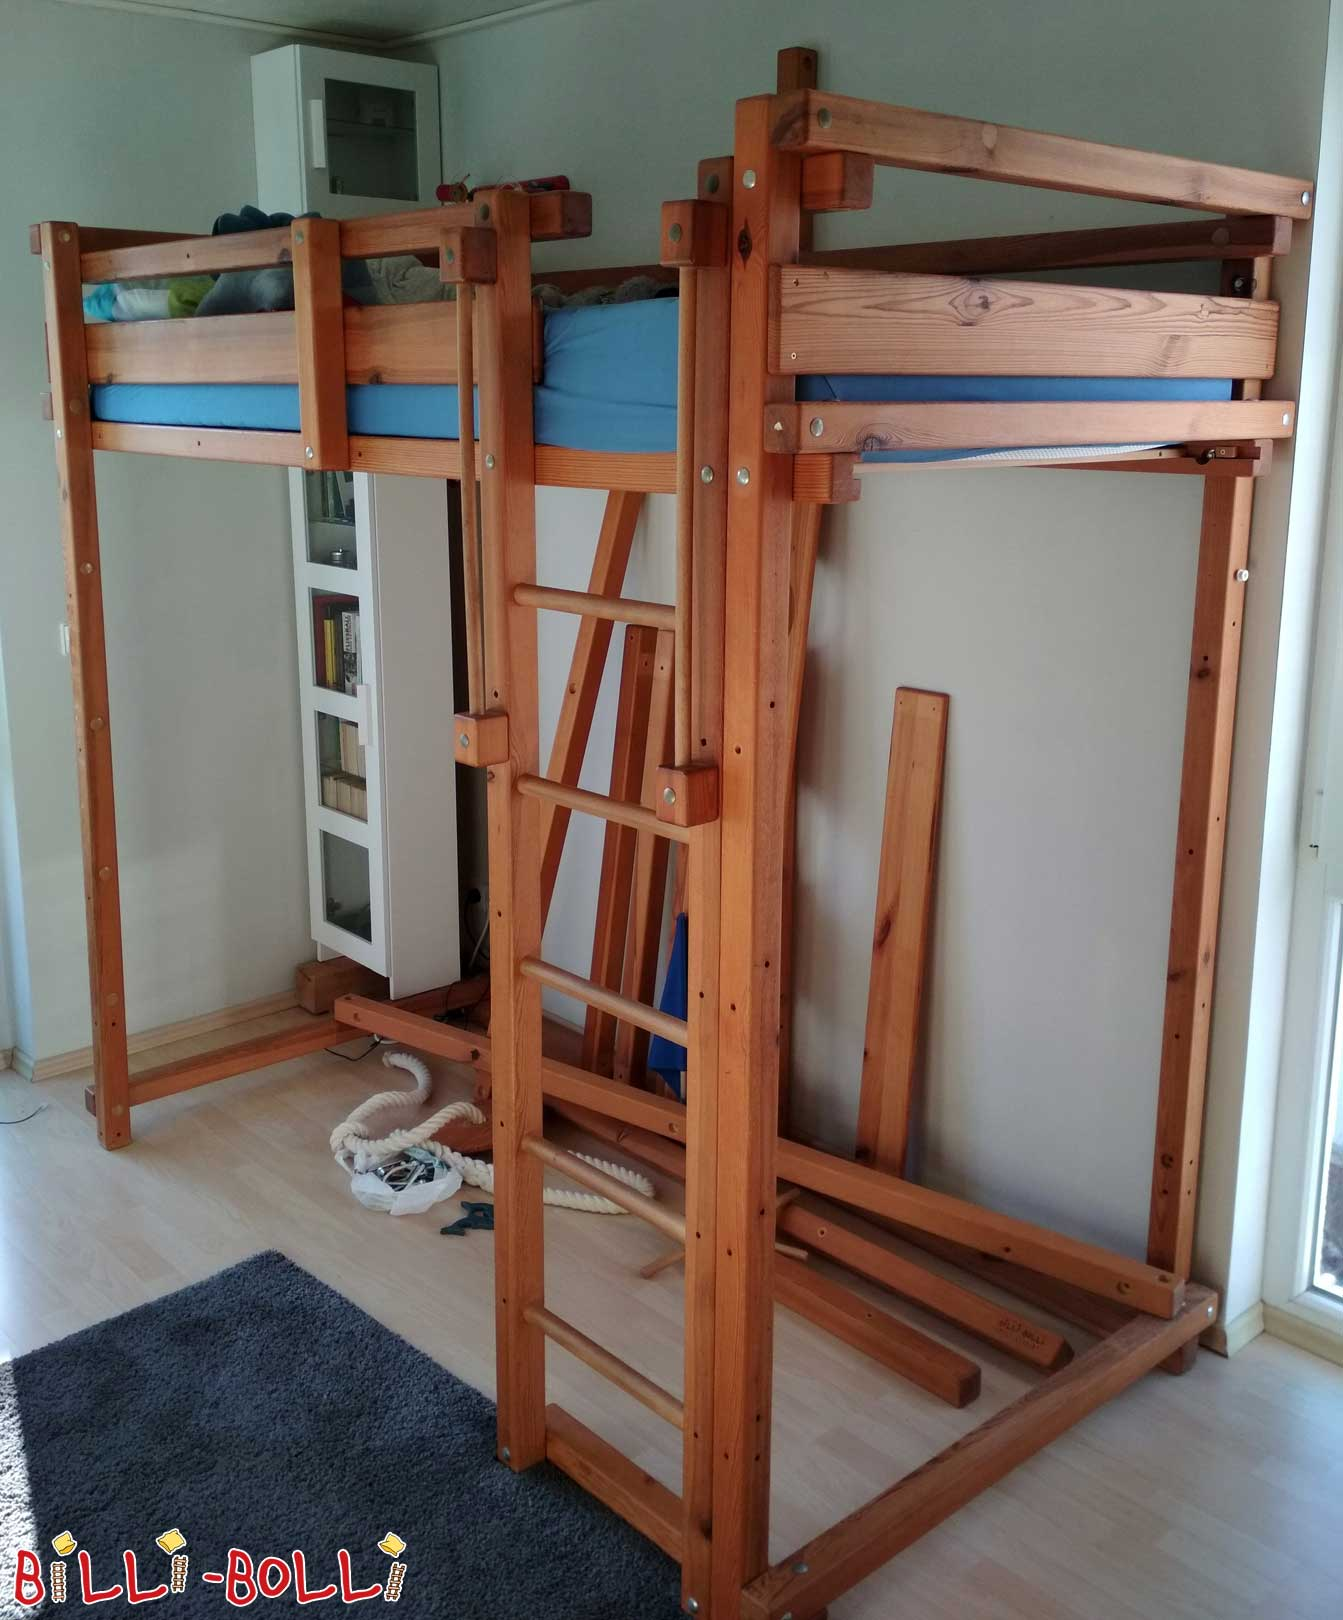 Billi-Bolli Adventure Bed, Solid Wood, Pine (second hand loft bed)